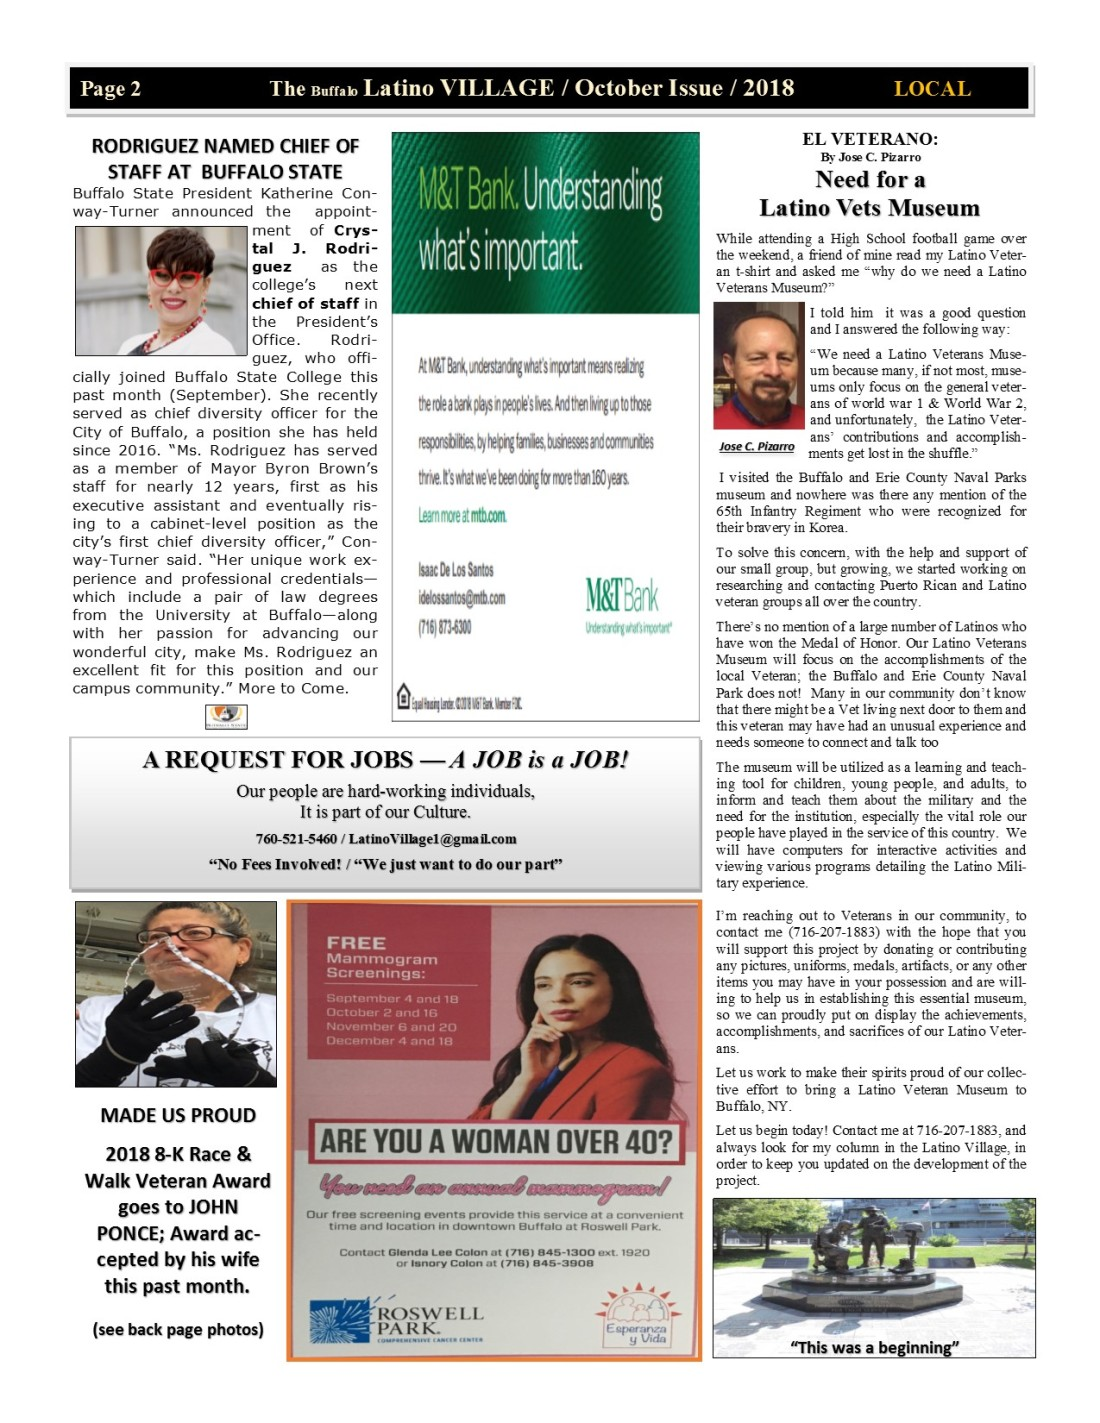 Page 2 Latino Village Newslette October Issue 2018 No. 12